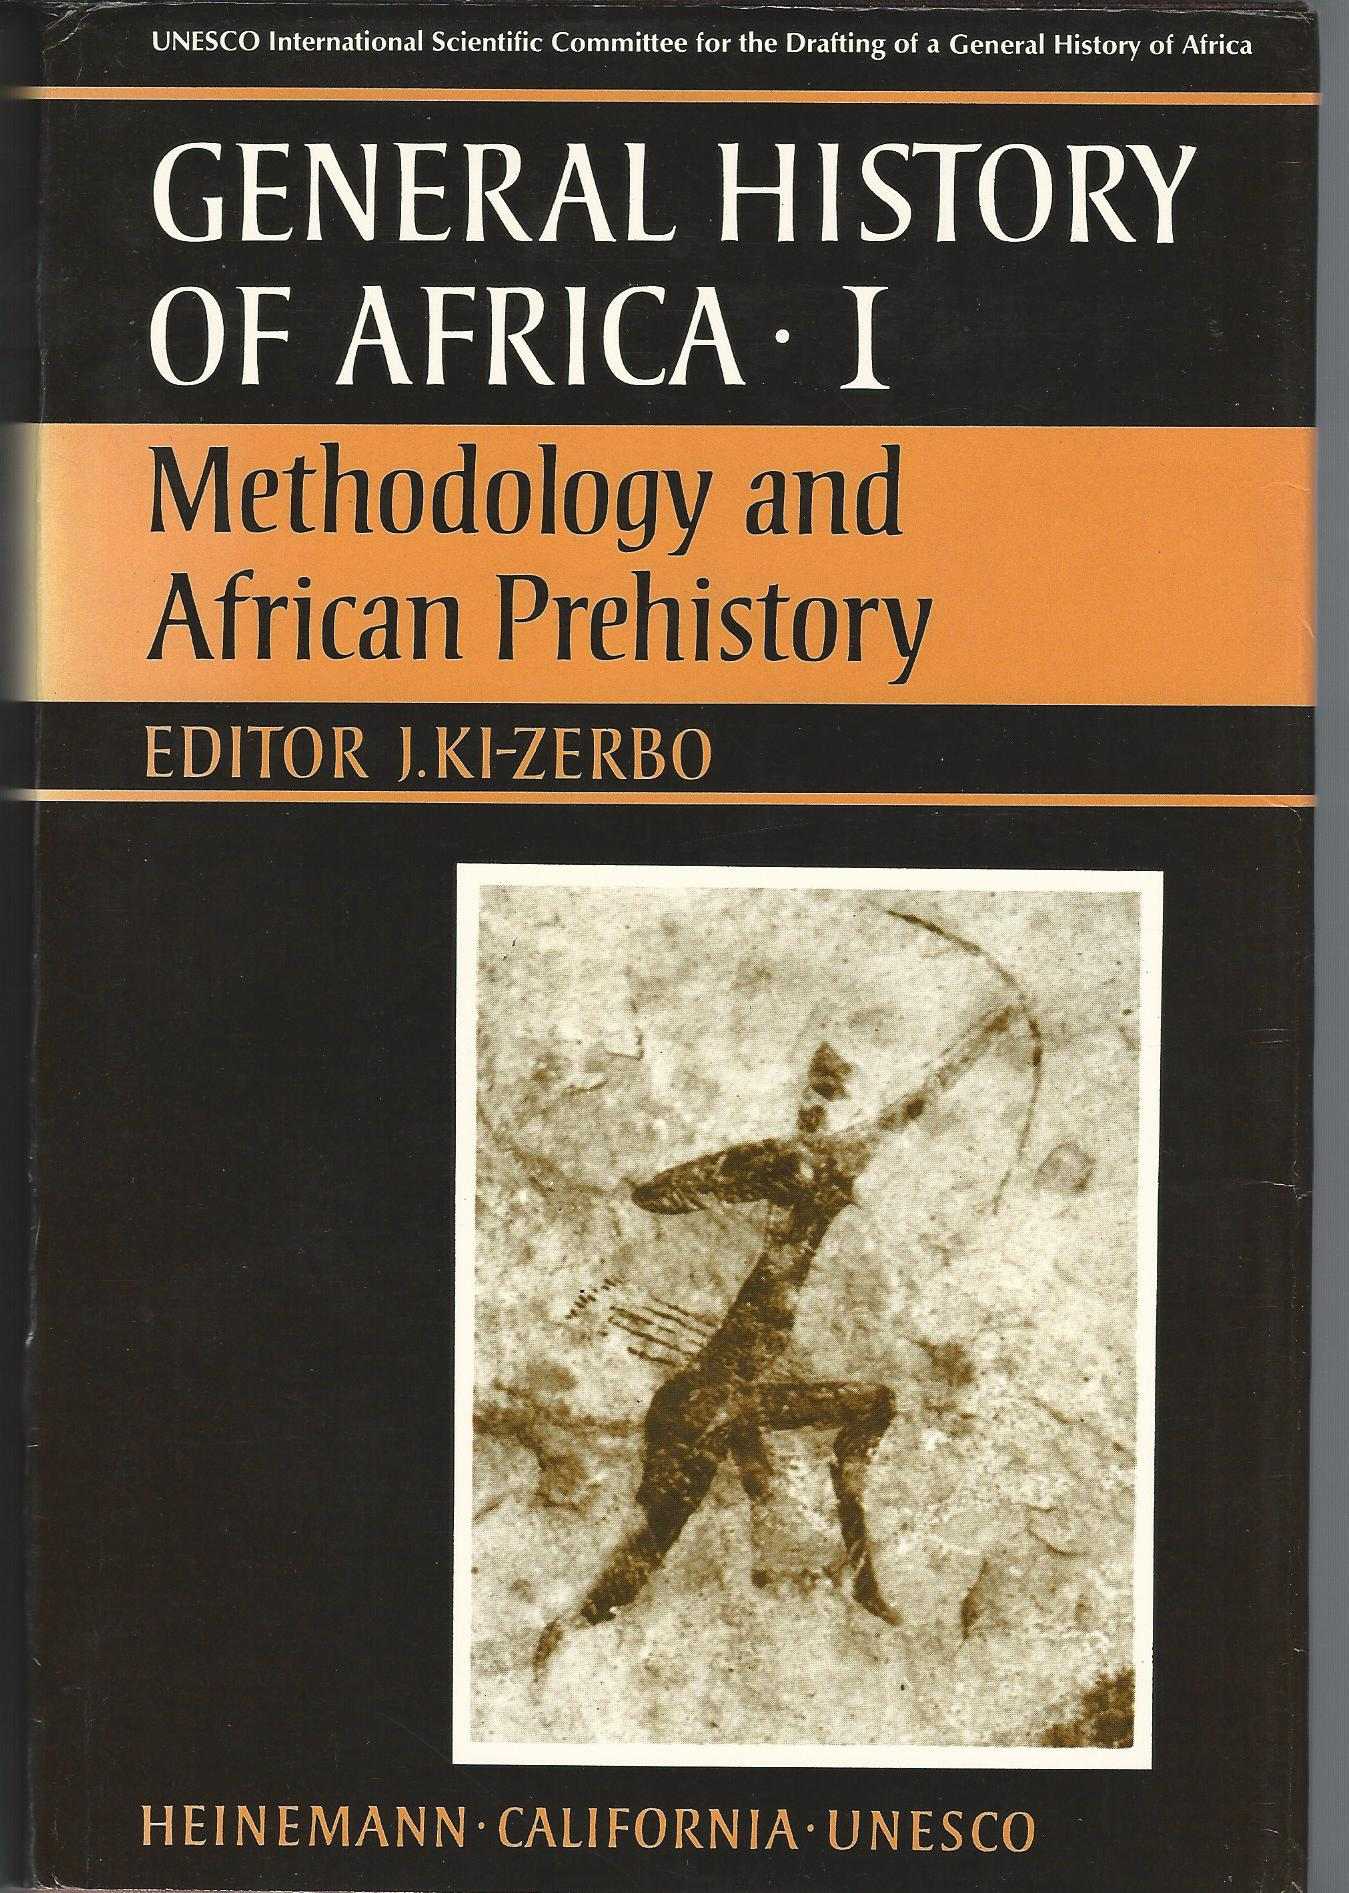 Image for General History of Africa I: Methodology and African Prehistory.